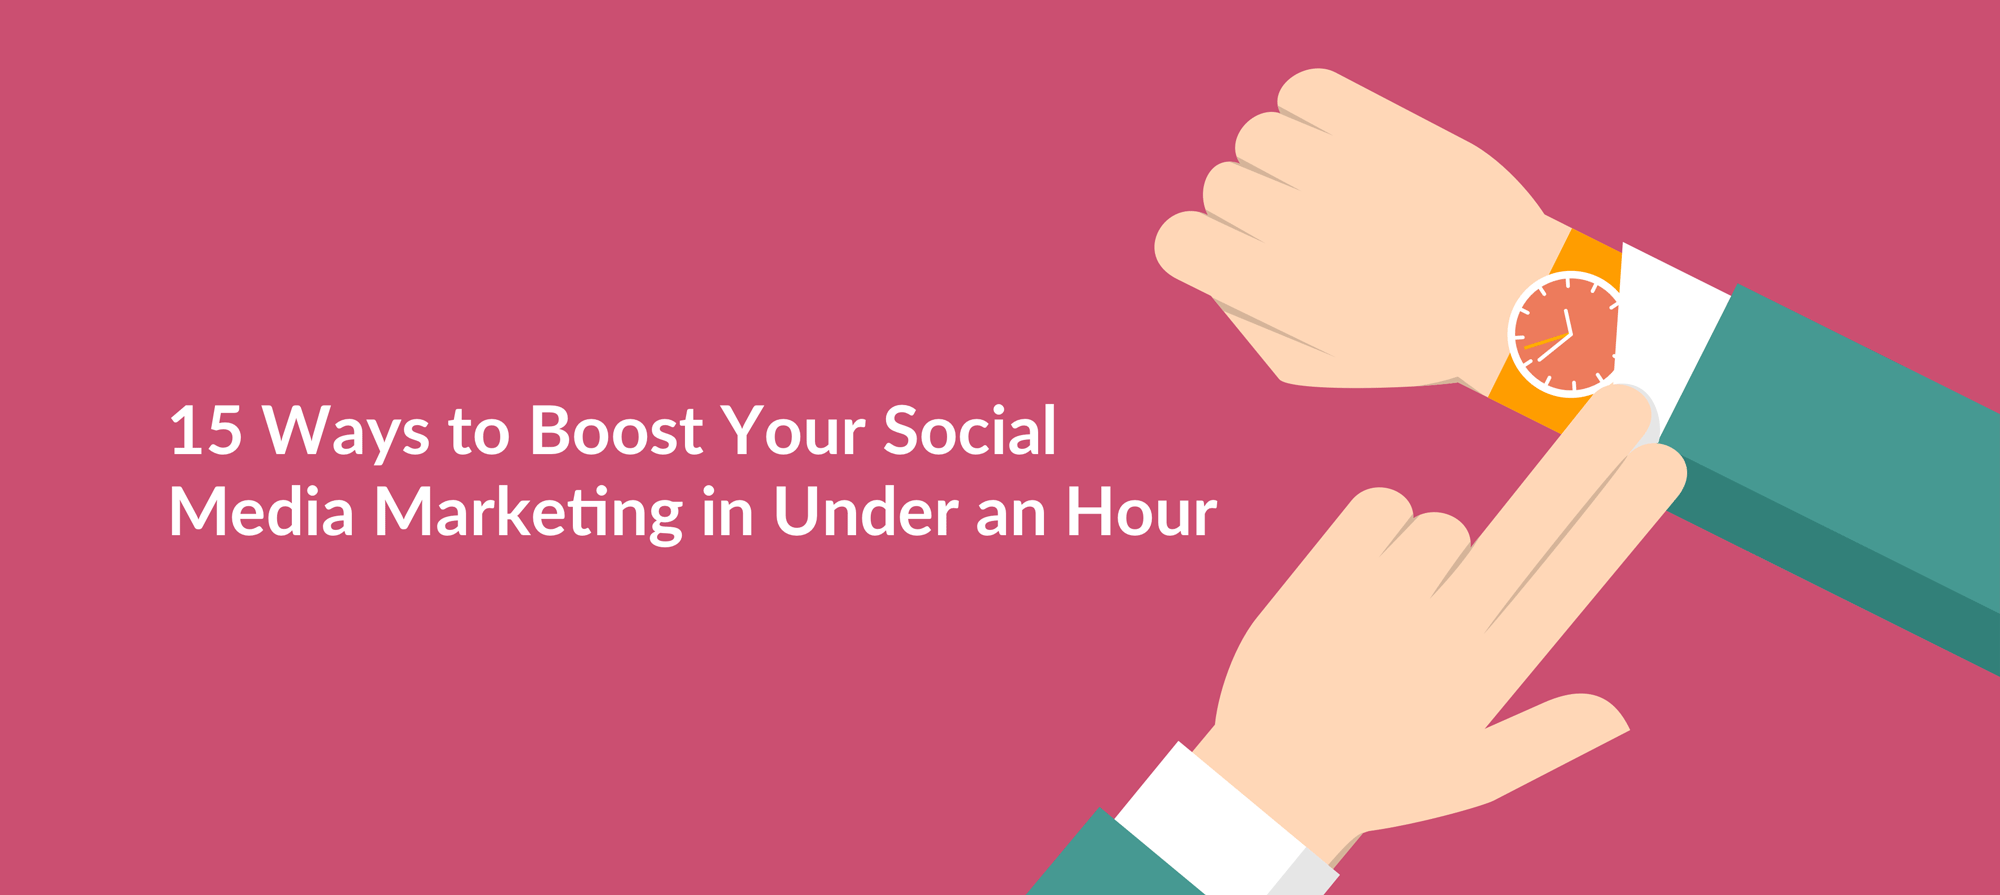 15 Surefire Ways to Boost Your Social Media Marketing in Under an Hour